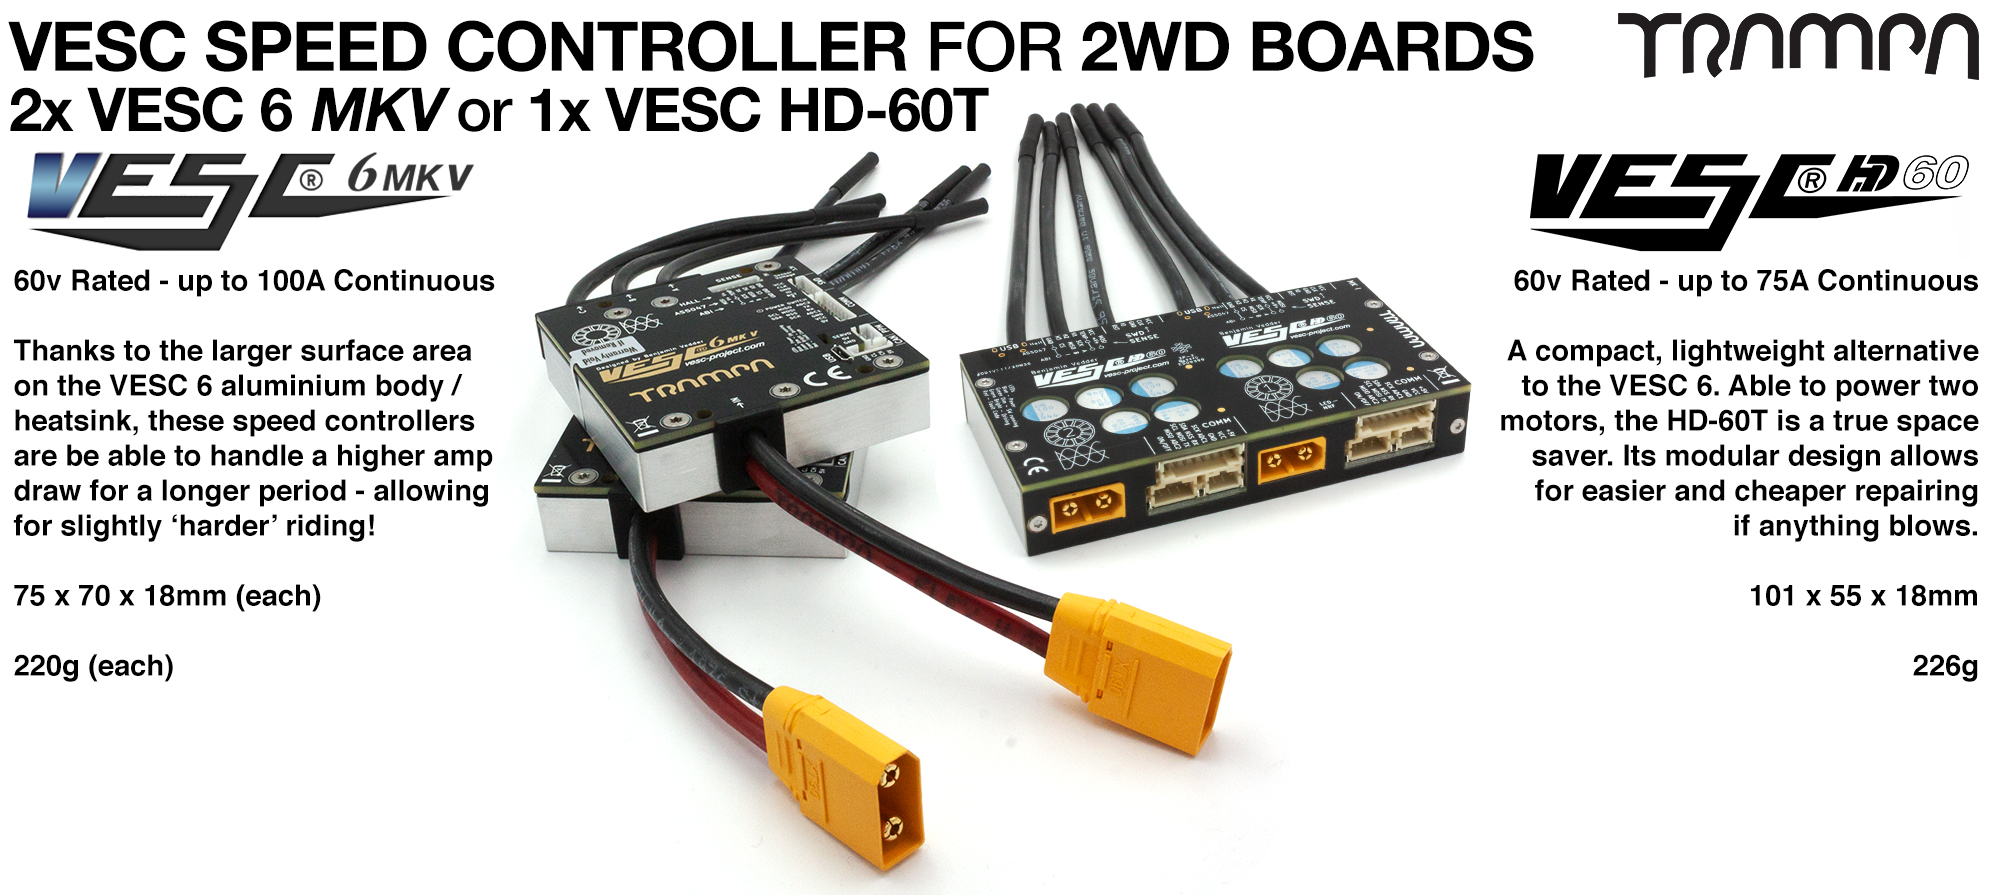 The Amazing VESC 6 or VESC HD-60T TWIN